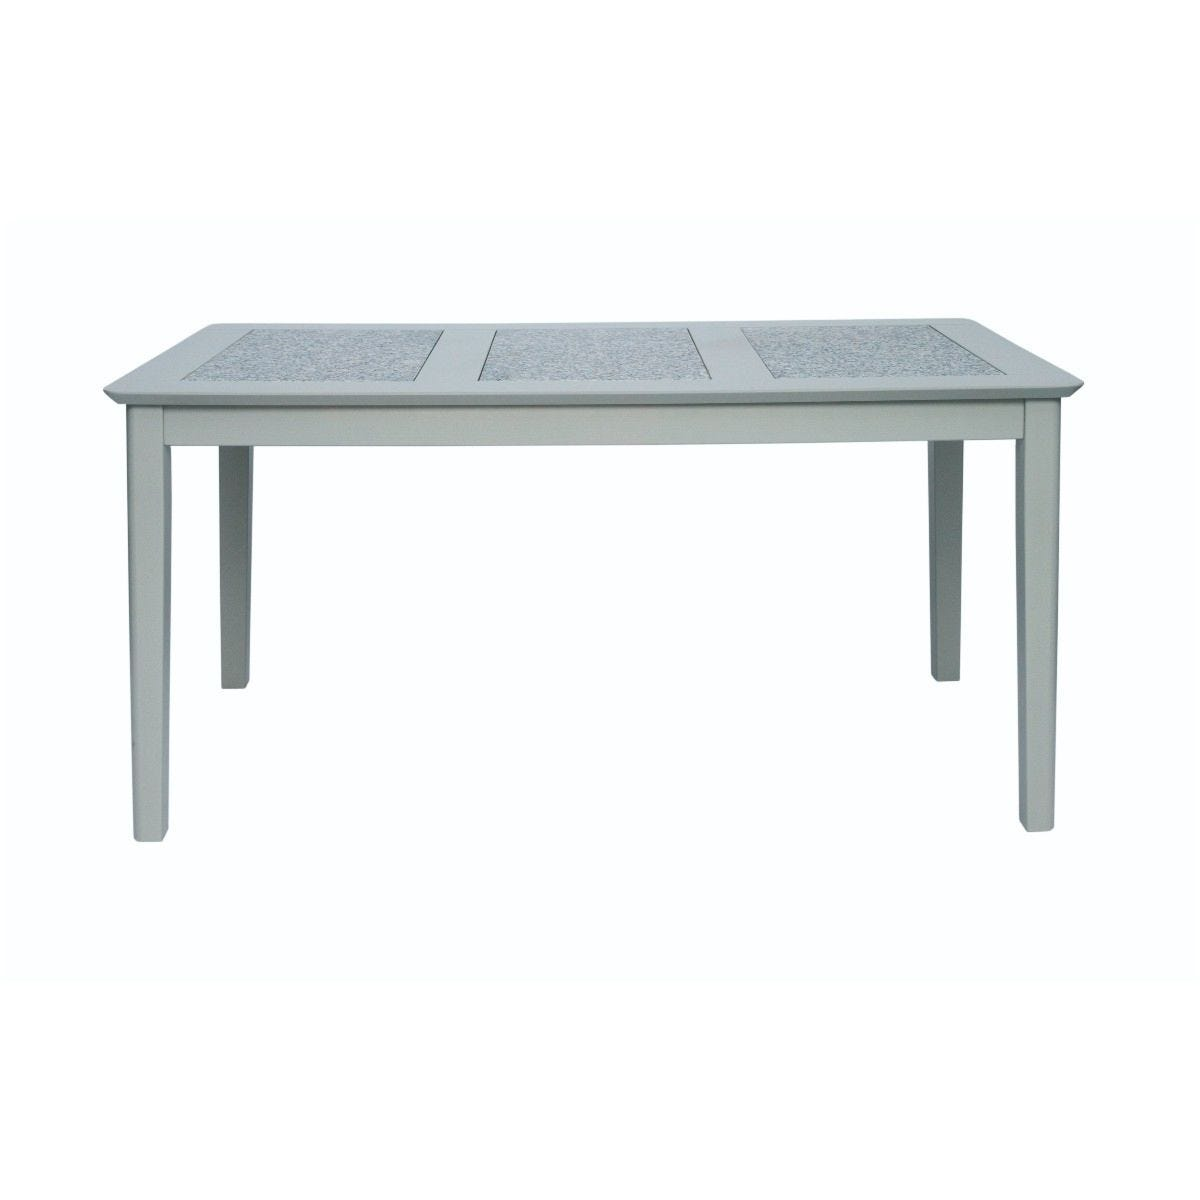 Perth 150cm Rectangular Dining Table Stone Inset Grey